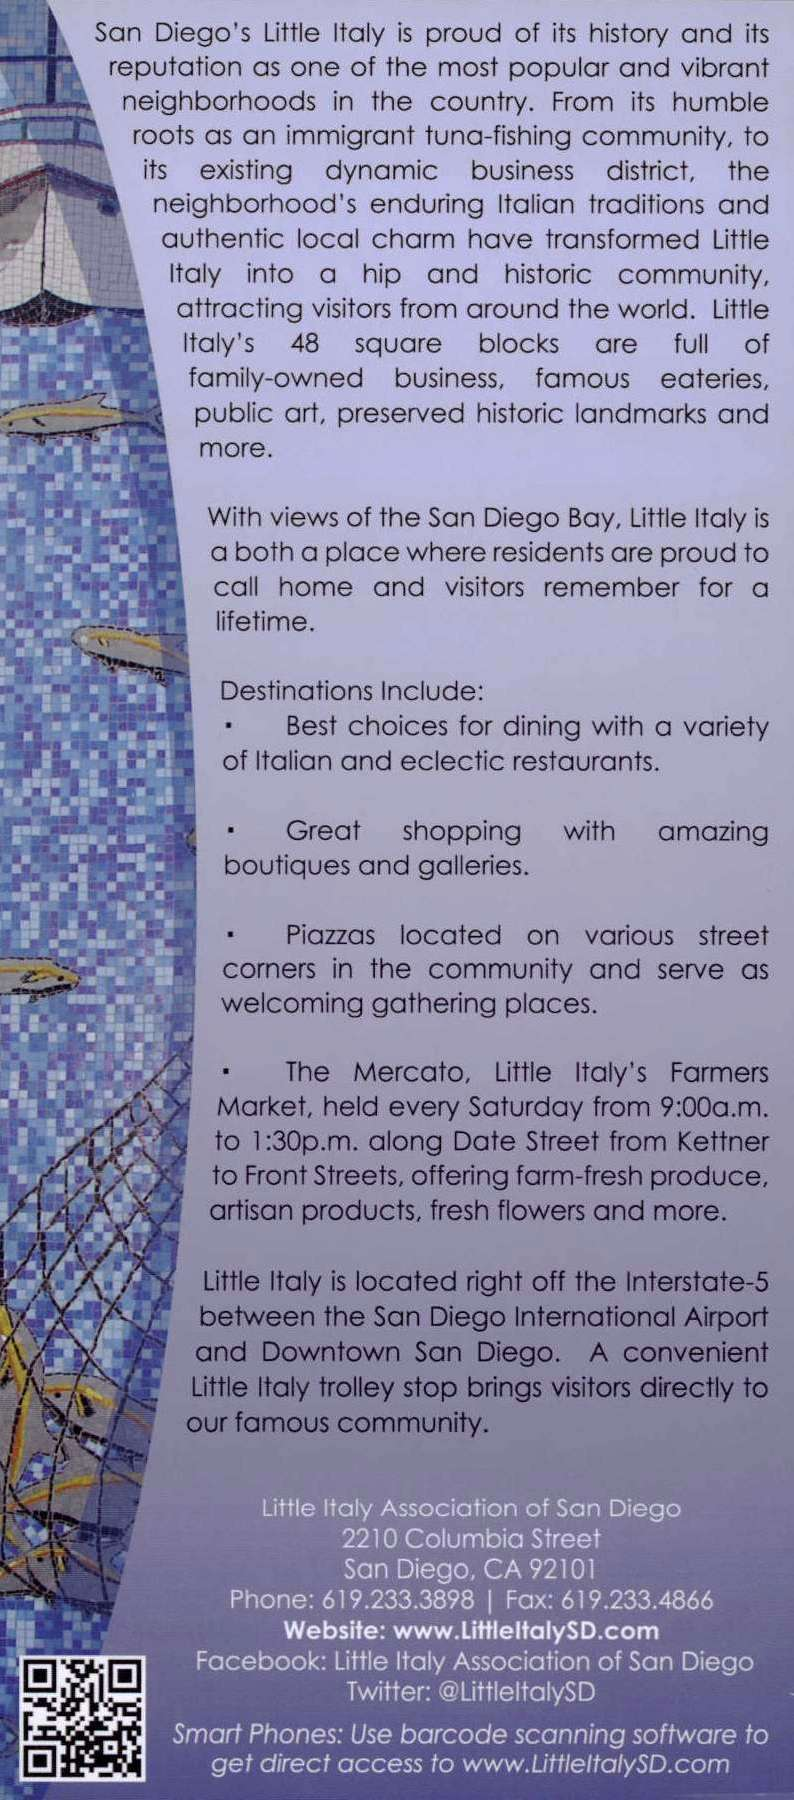 Little Italy Association Back Brochure Cover